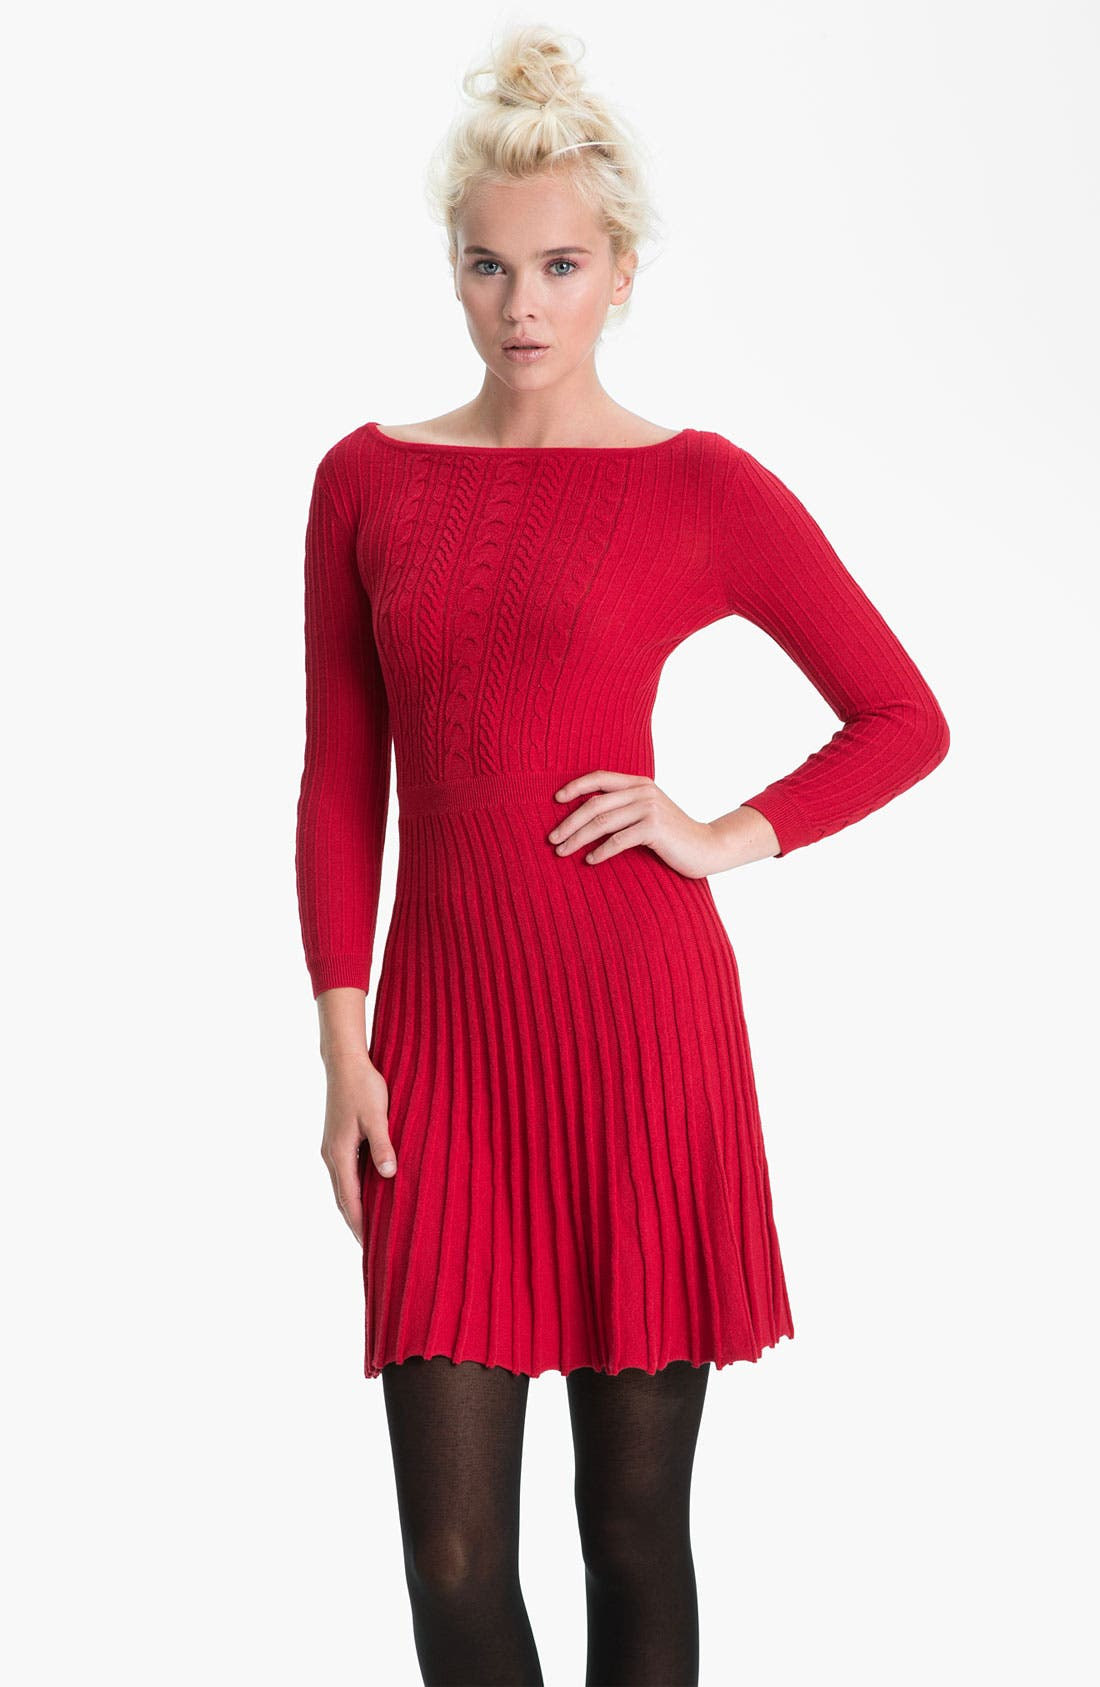 Alternate Image 1 Selected - BCBGMAXAZRIA Boat Neck Cable Knit Sweater Dress